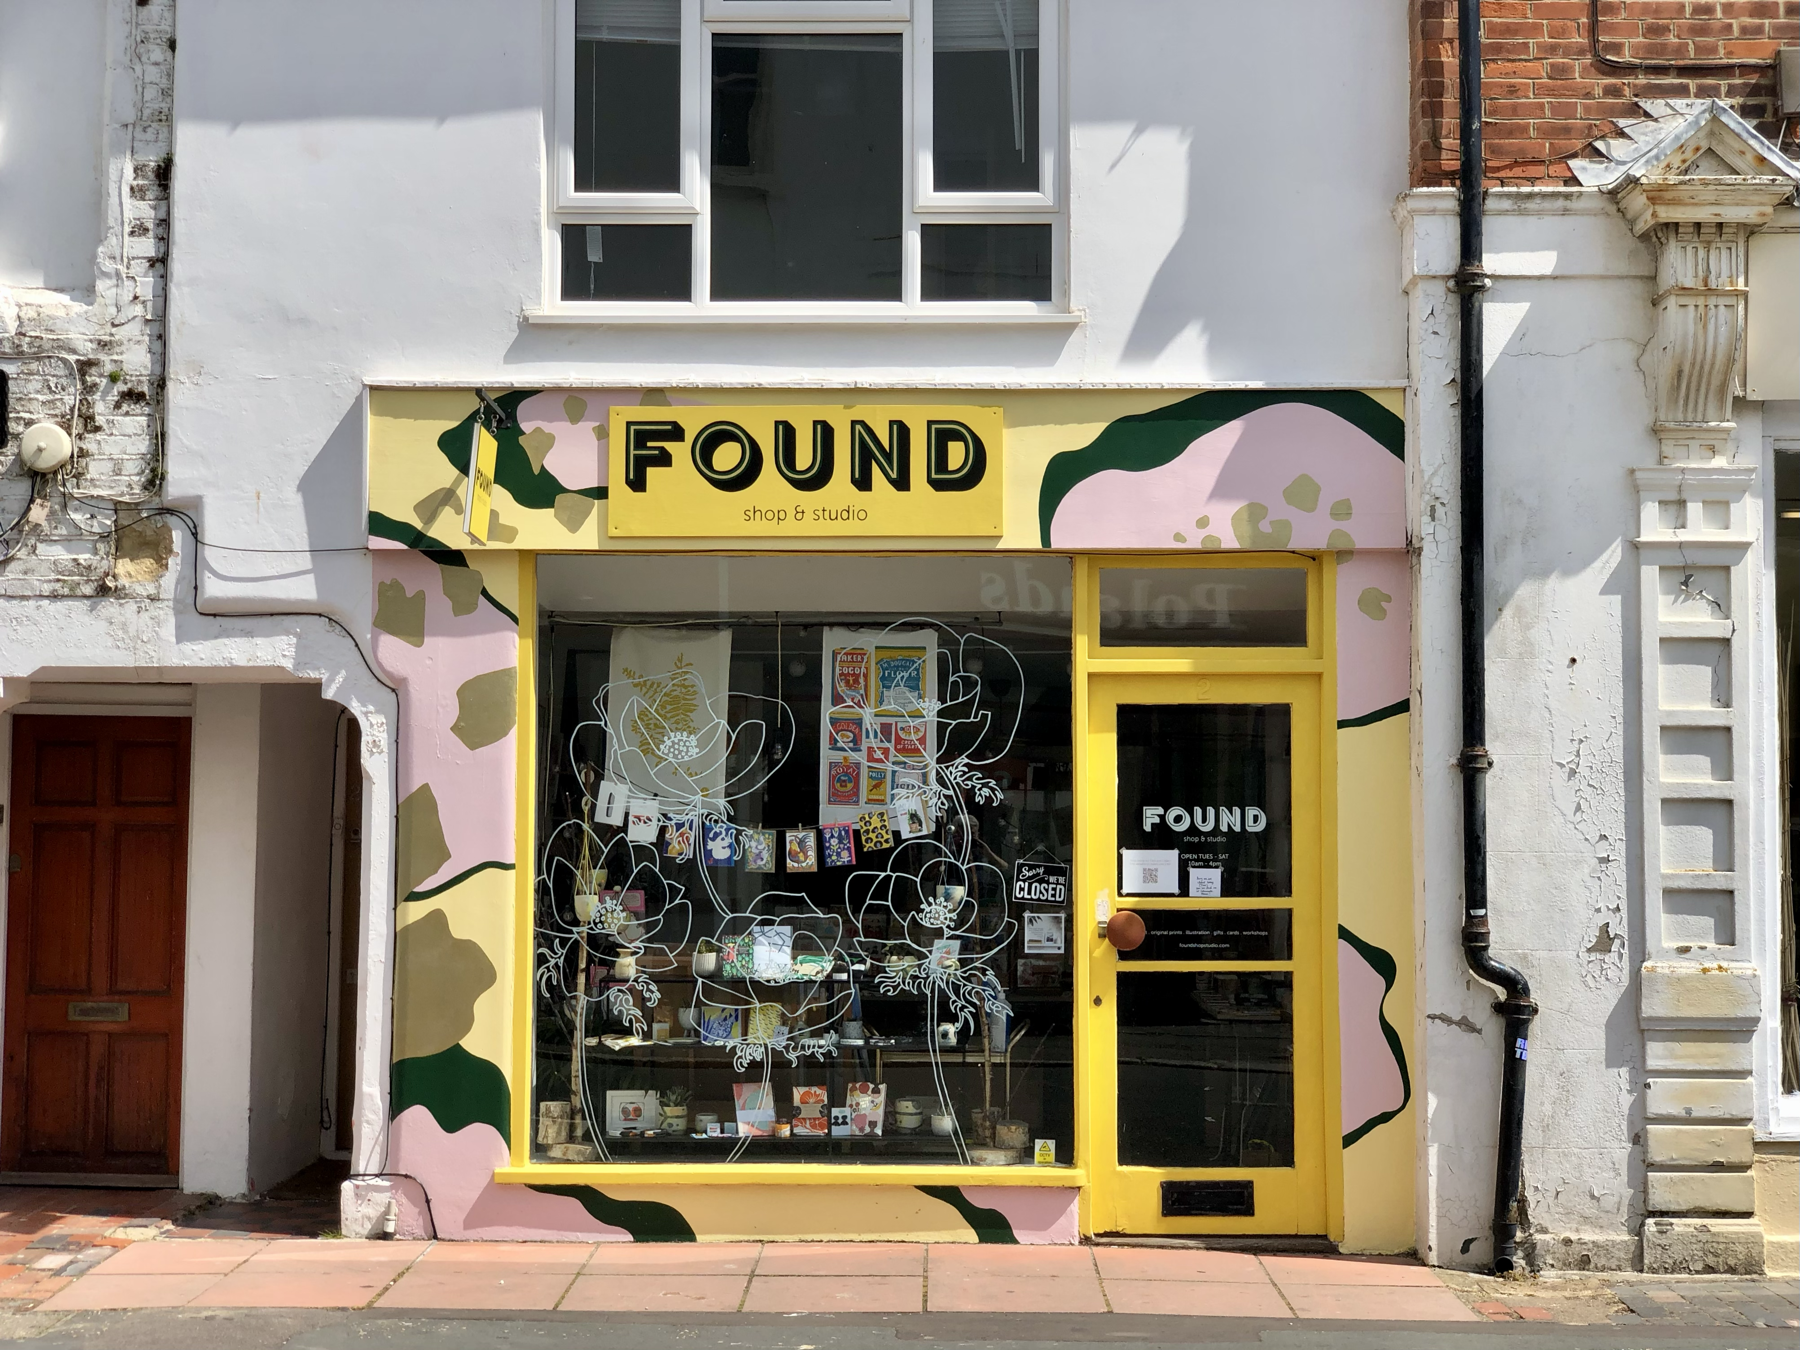 Found, a shop in Worthing